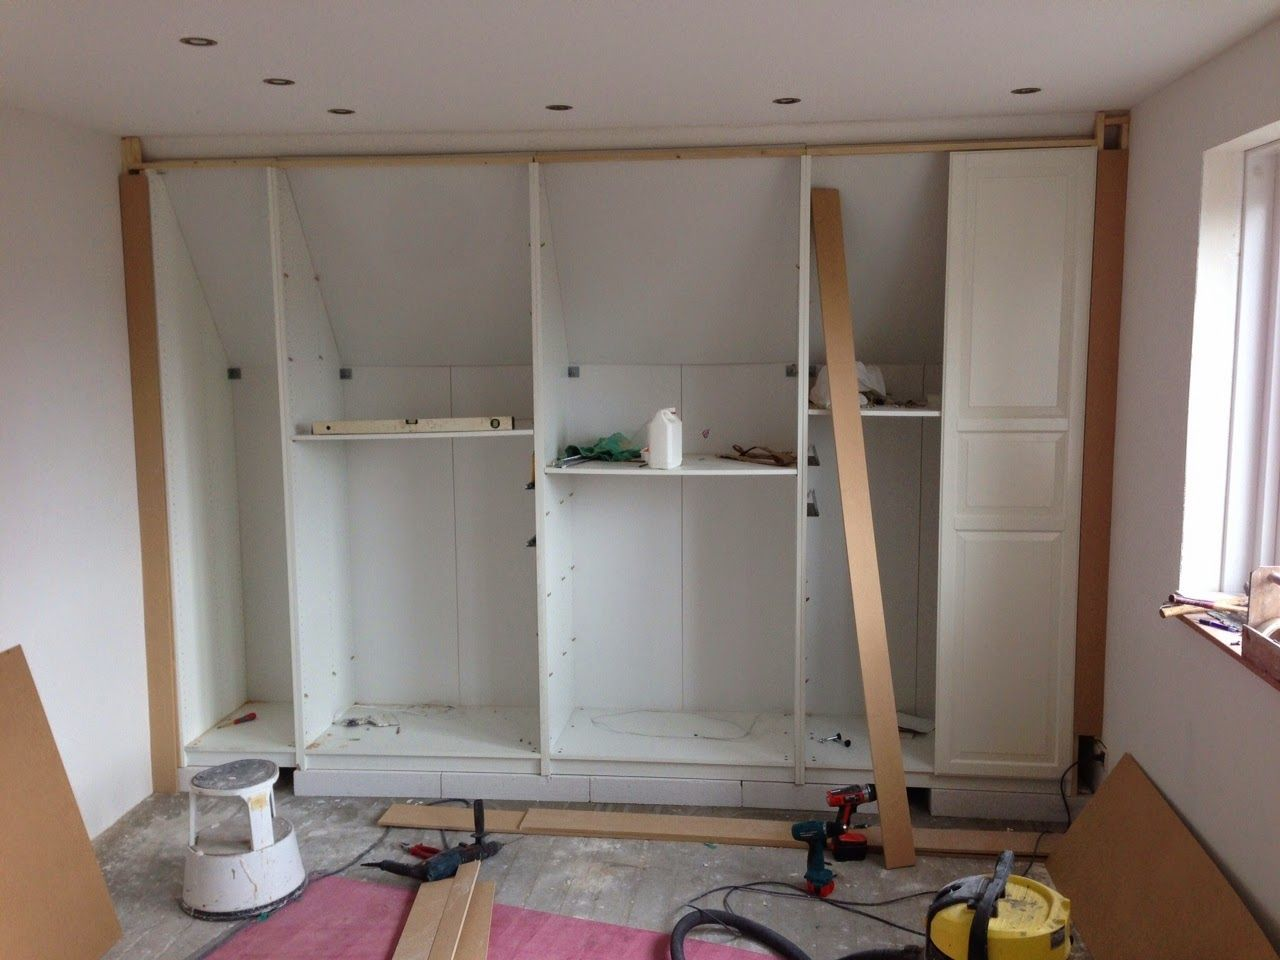 Ikea Kitchen Cabinets To Ceiling Image Result For Cut Ikea System To Fit In Slanted